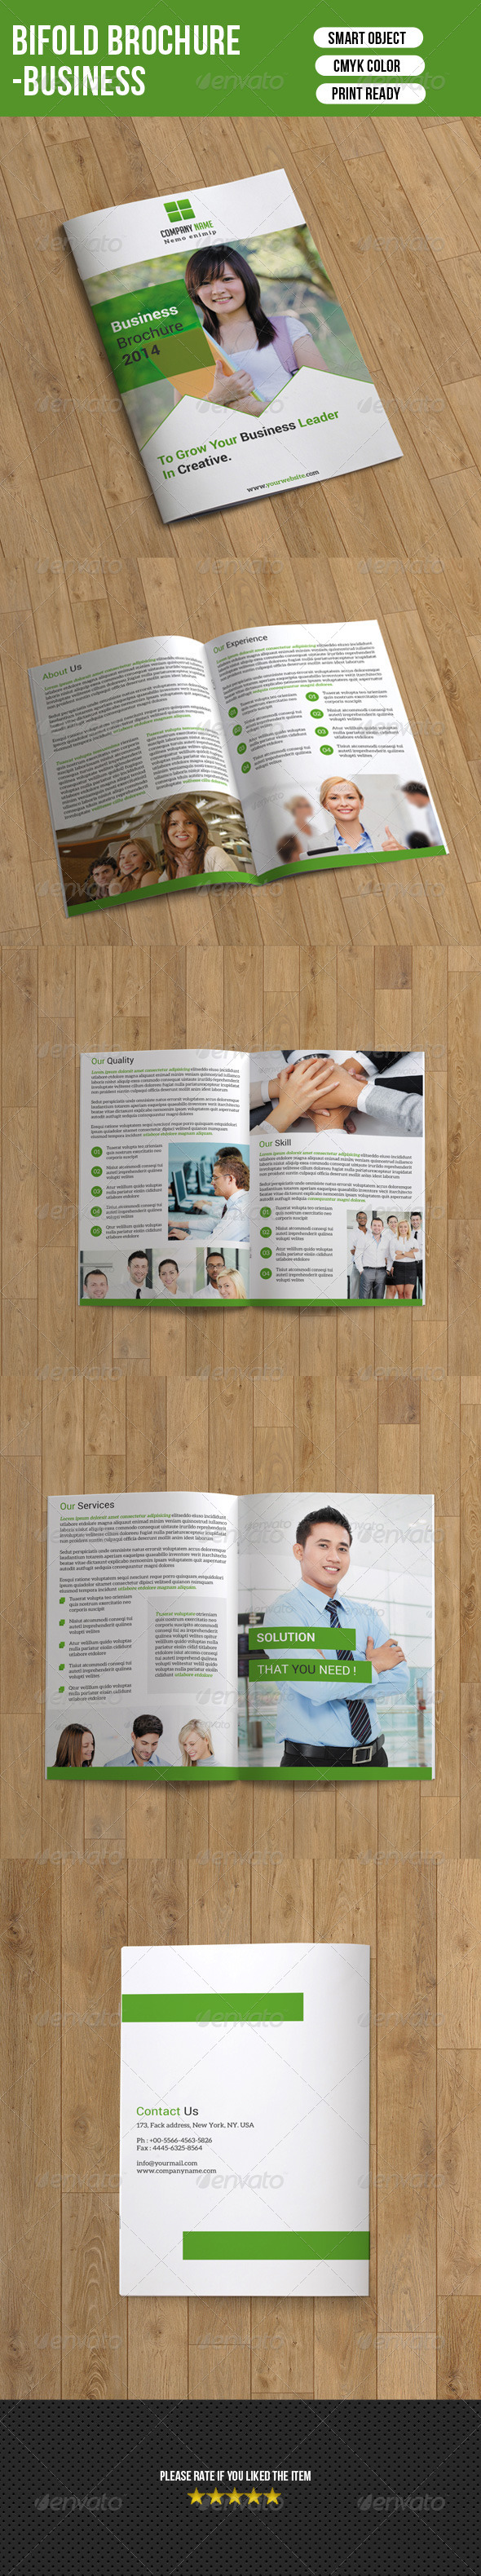 GraphicRiver Business Brochure 7505153